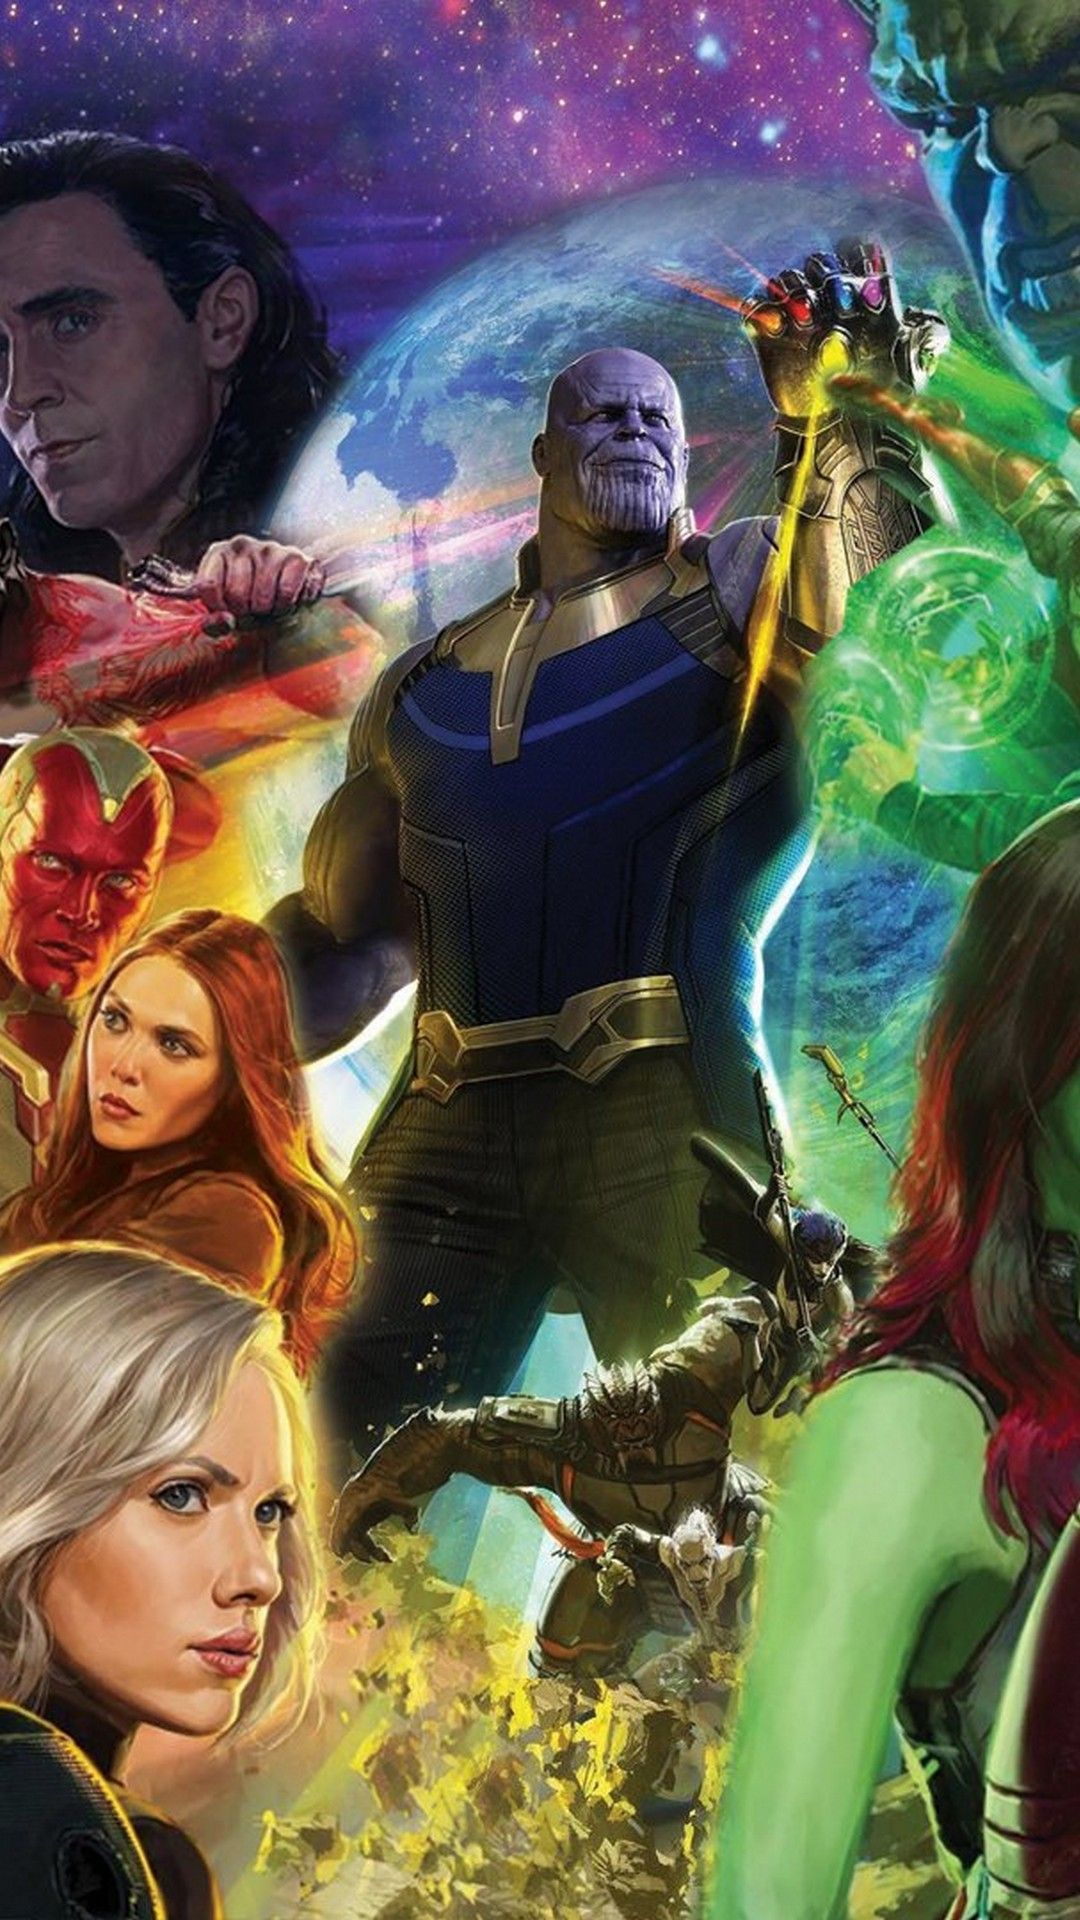 Avengers infinity wallpapers top free avengers infinity - Avengers infinity war wallpaper iphone ...